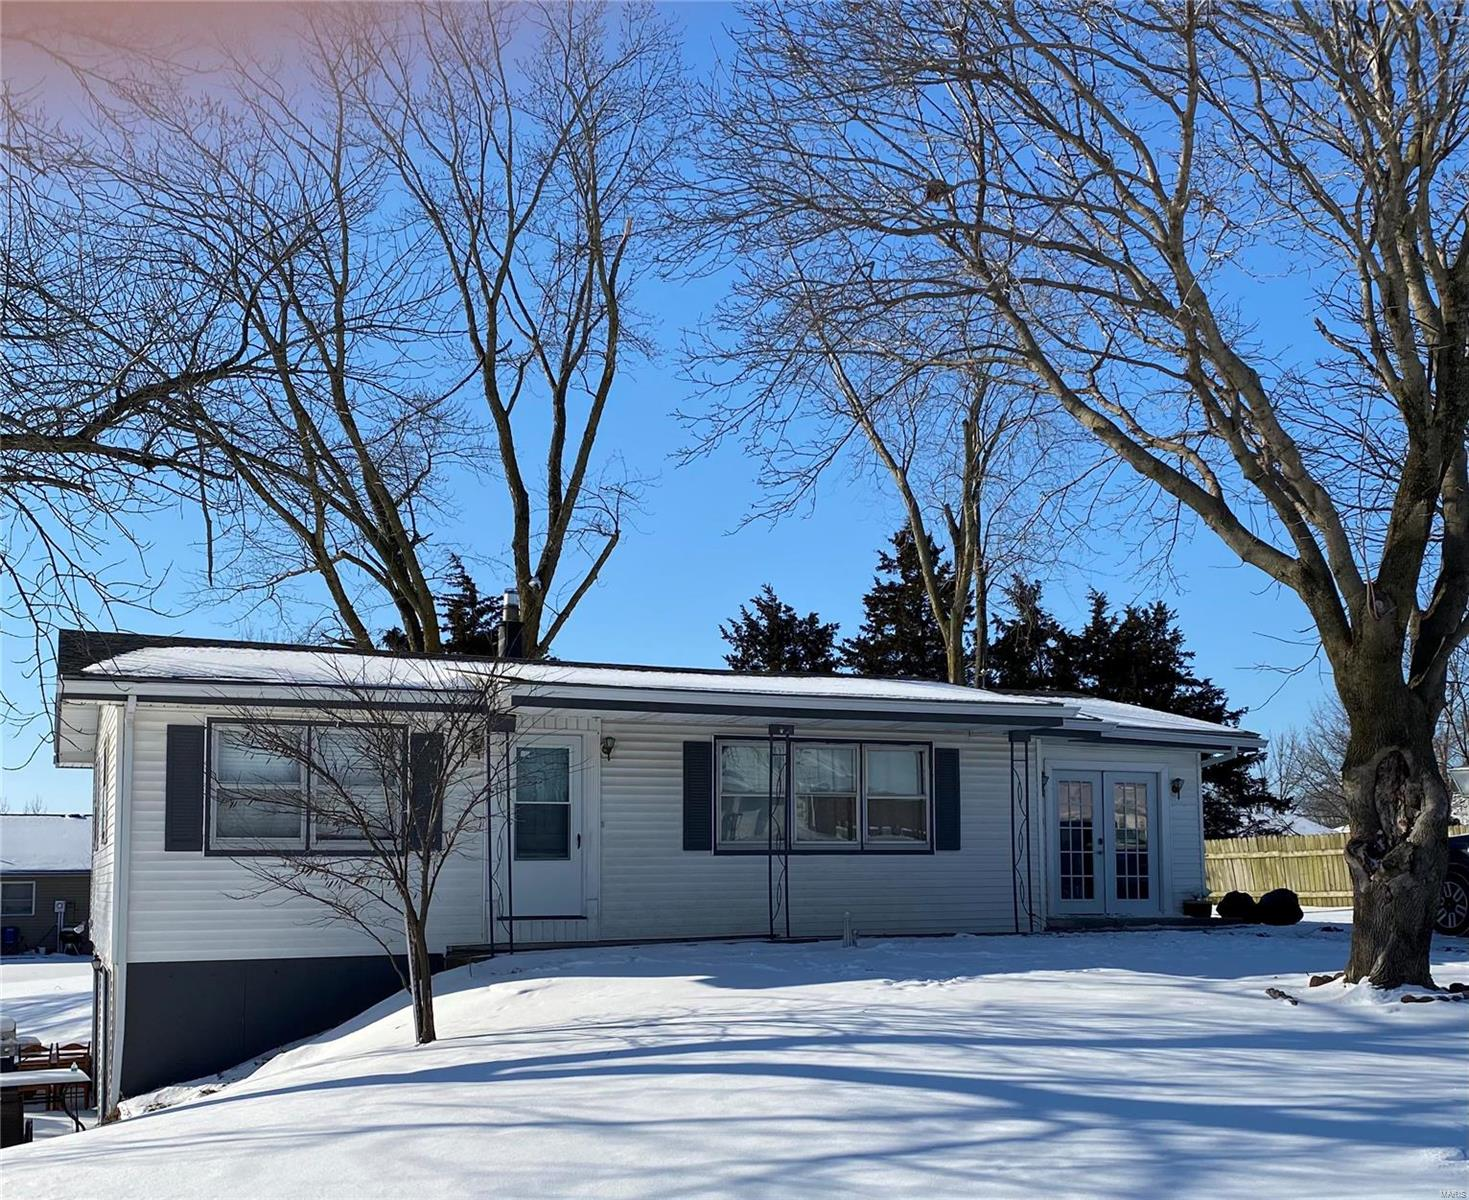 56317 Meyer Trail Property Photo - Hannibal, MO real estate listing